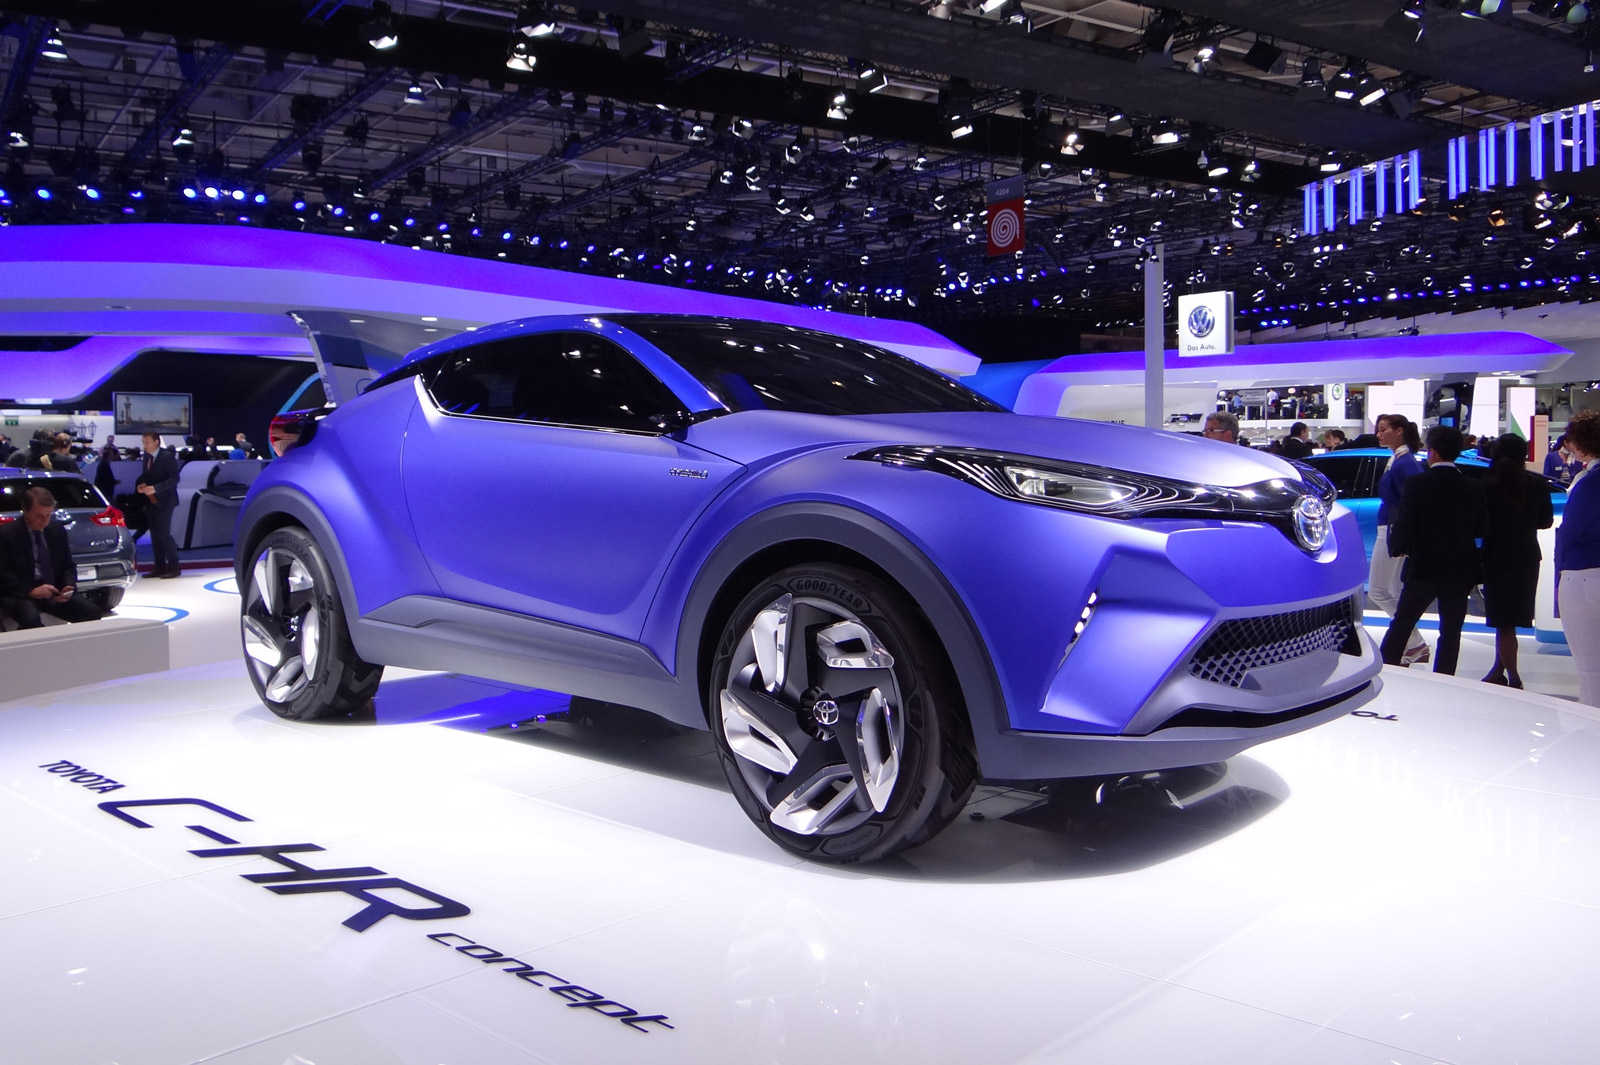 Toyota C-HR Concept Previews Future Subcompact Crossover: Live Photos & Video